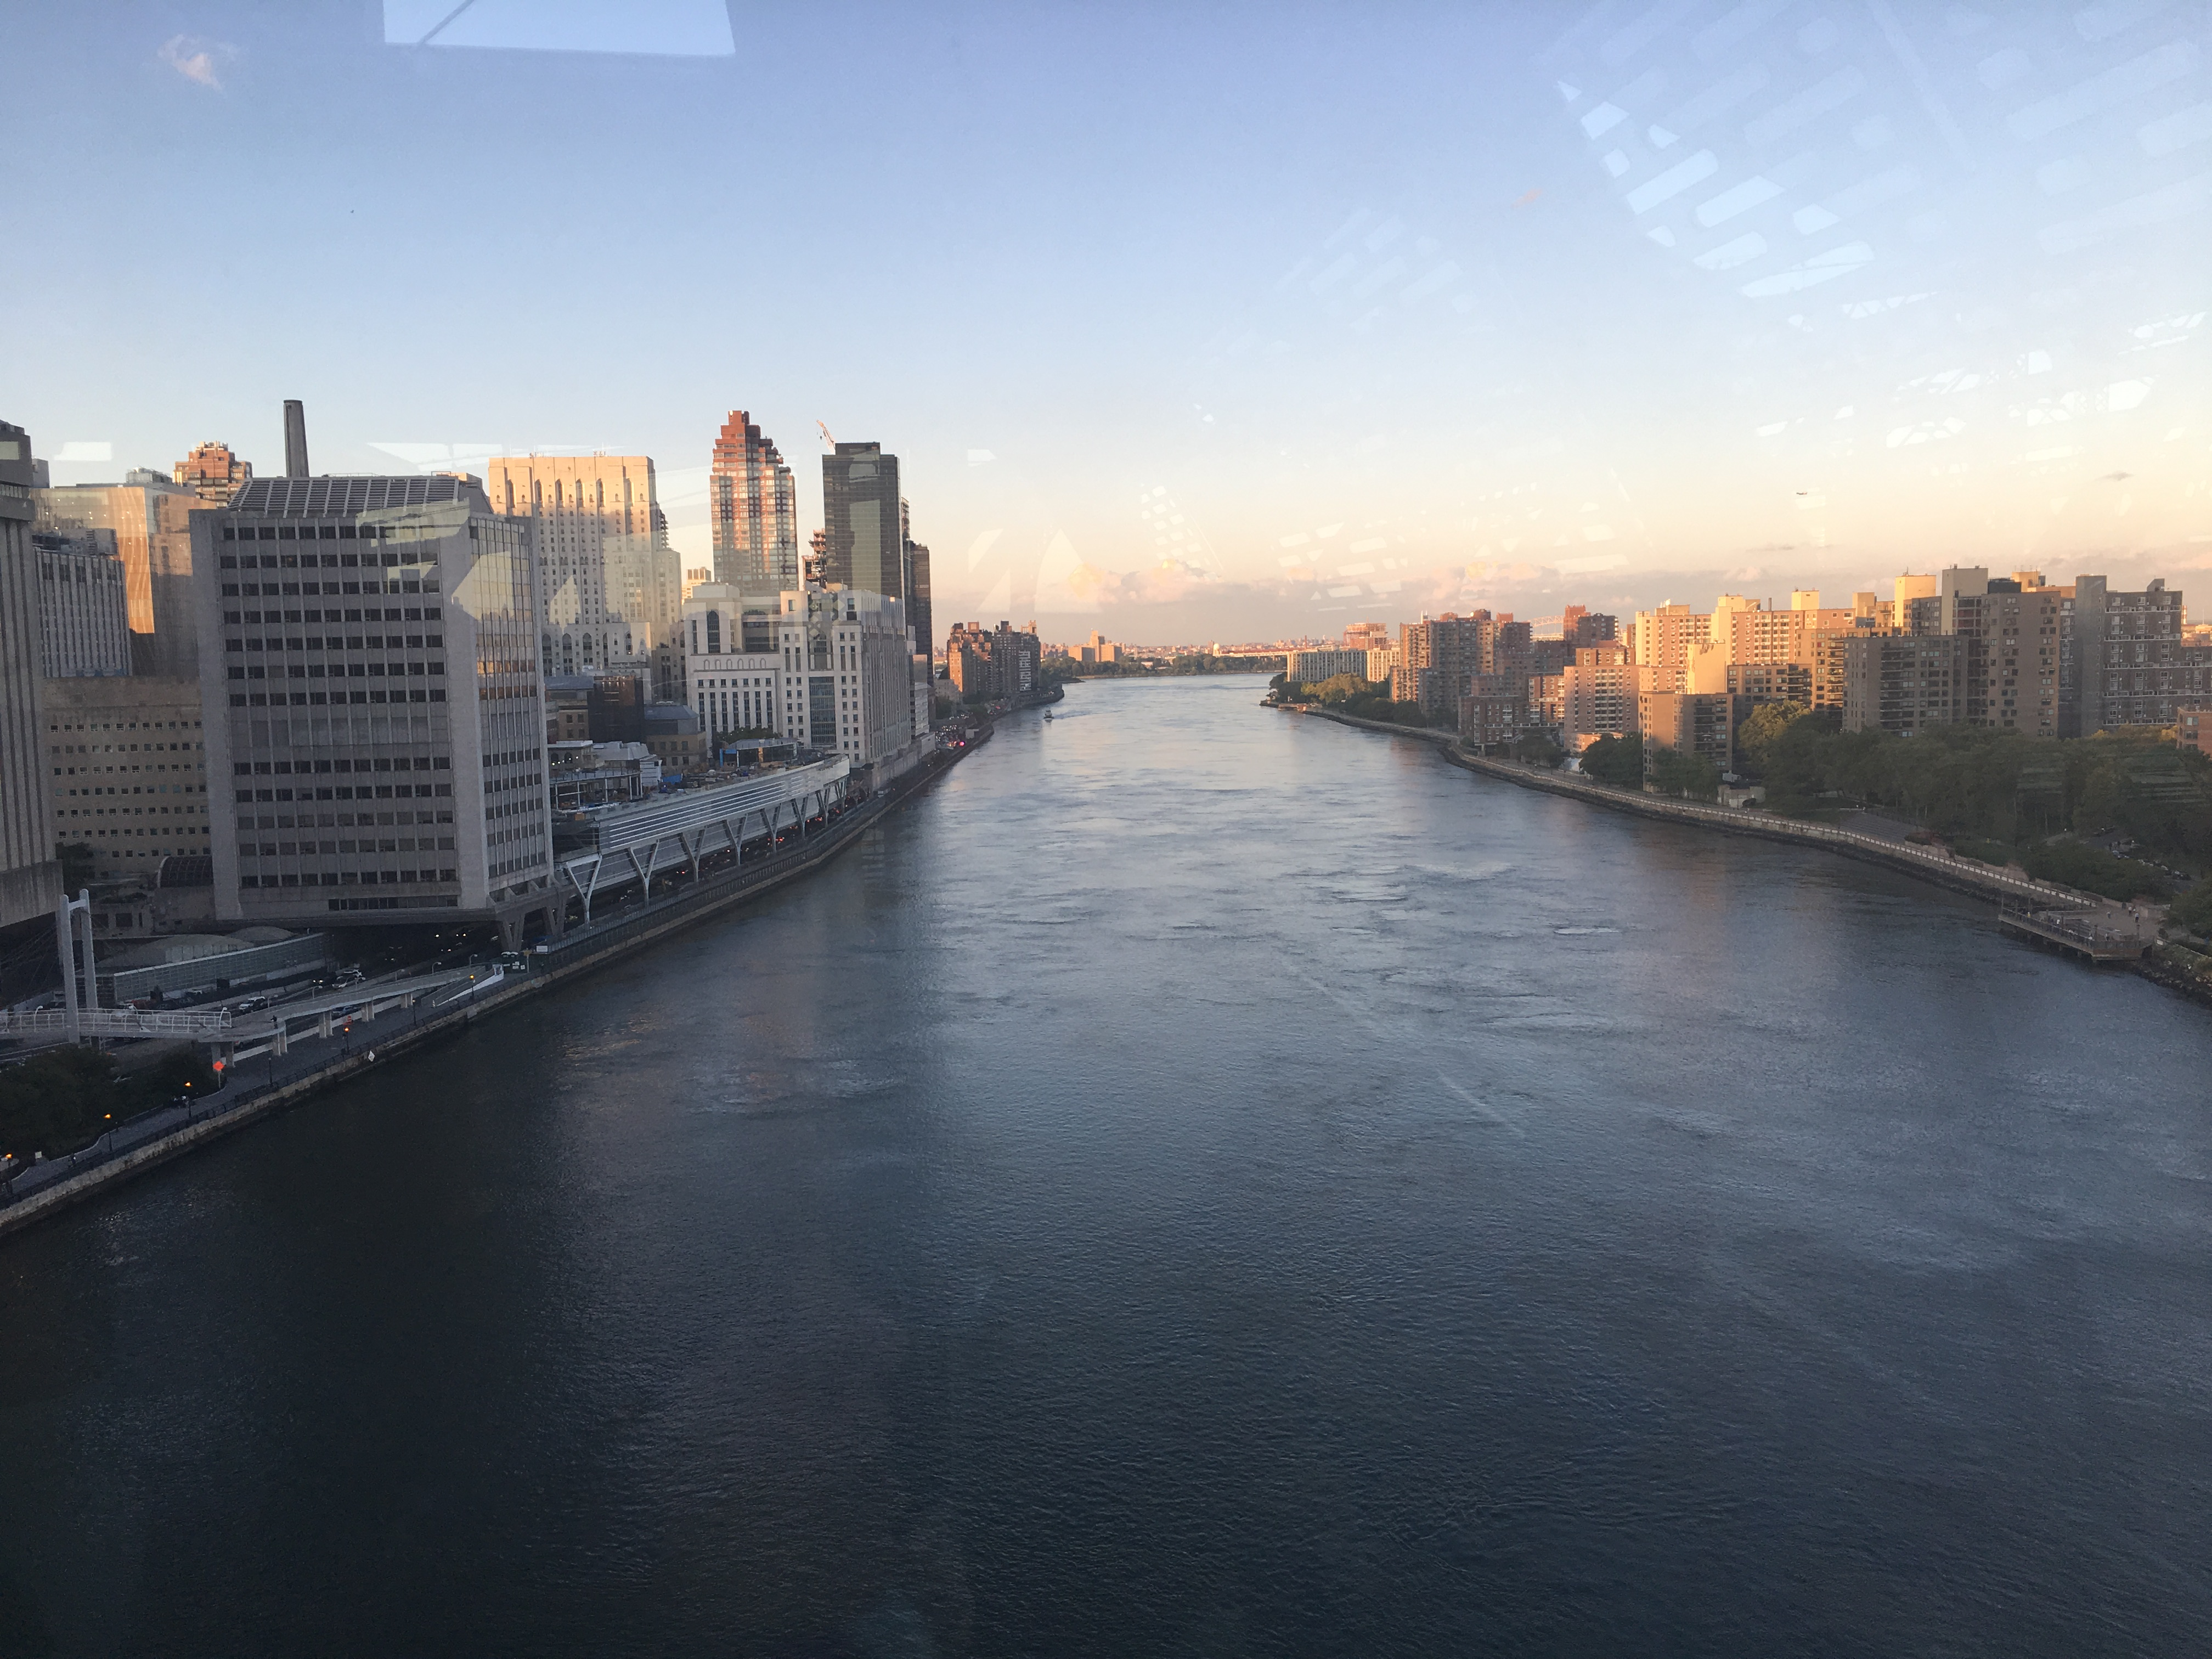 The beautiful East River from the center of the cable car line.